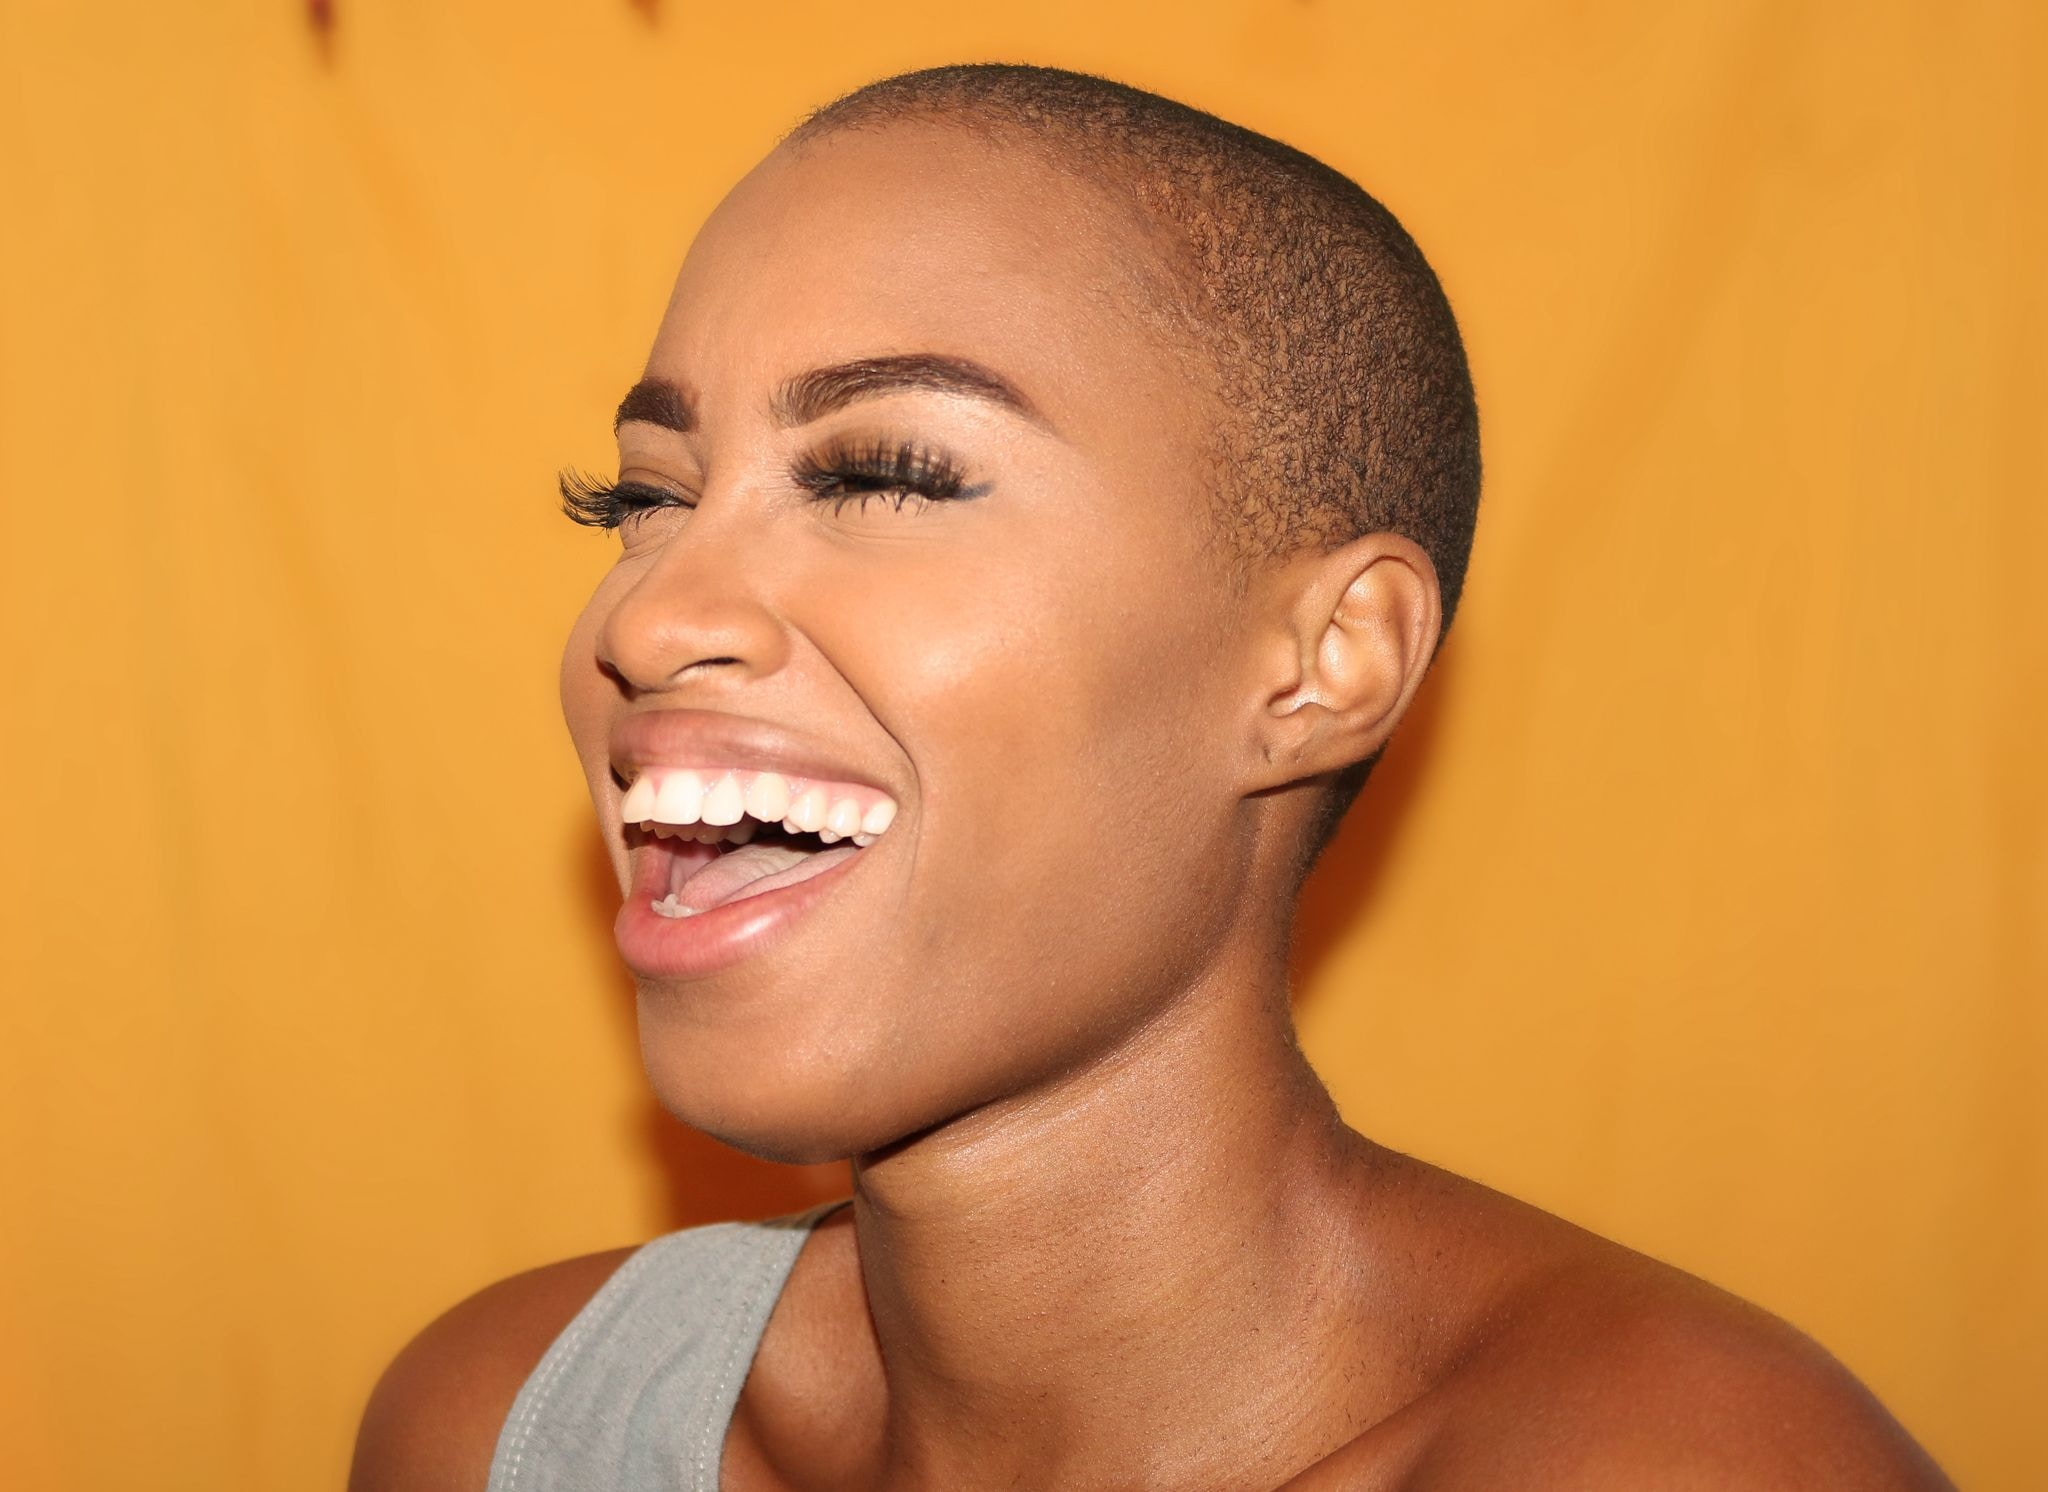 black woman with beautiful skin laughing